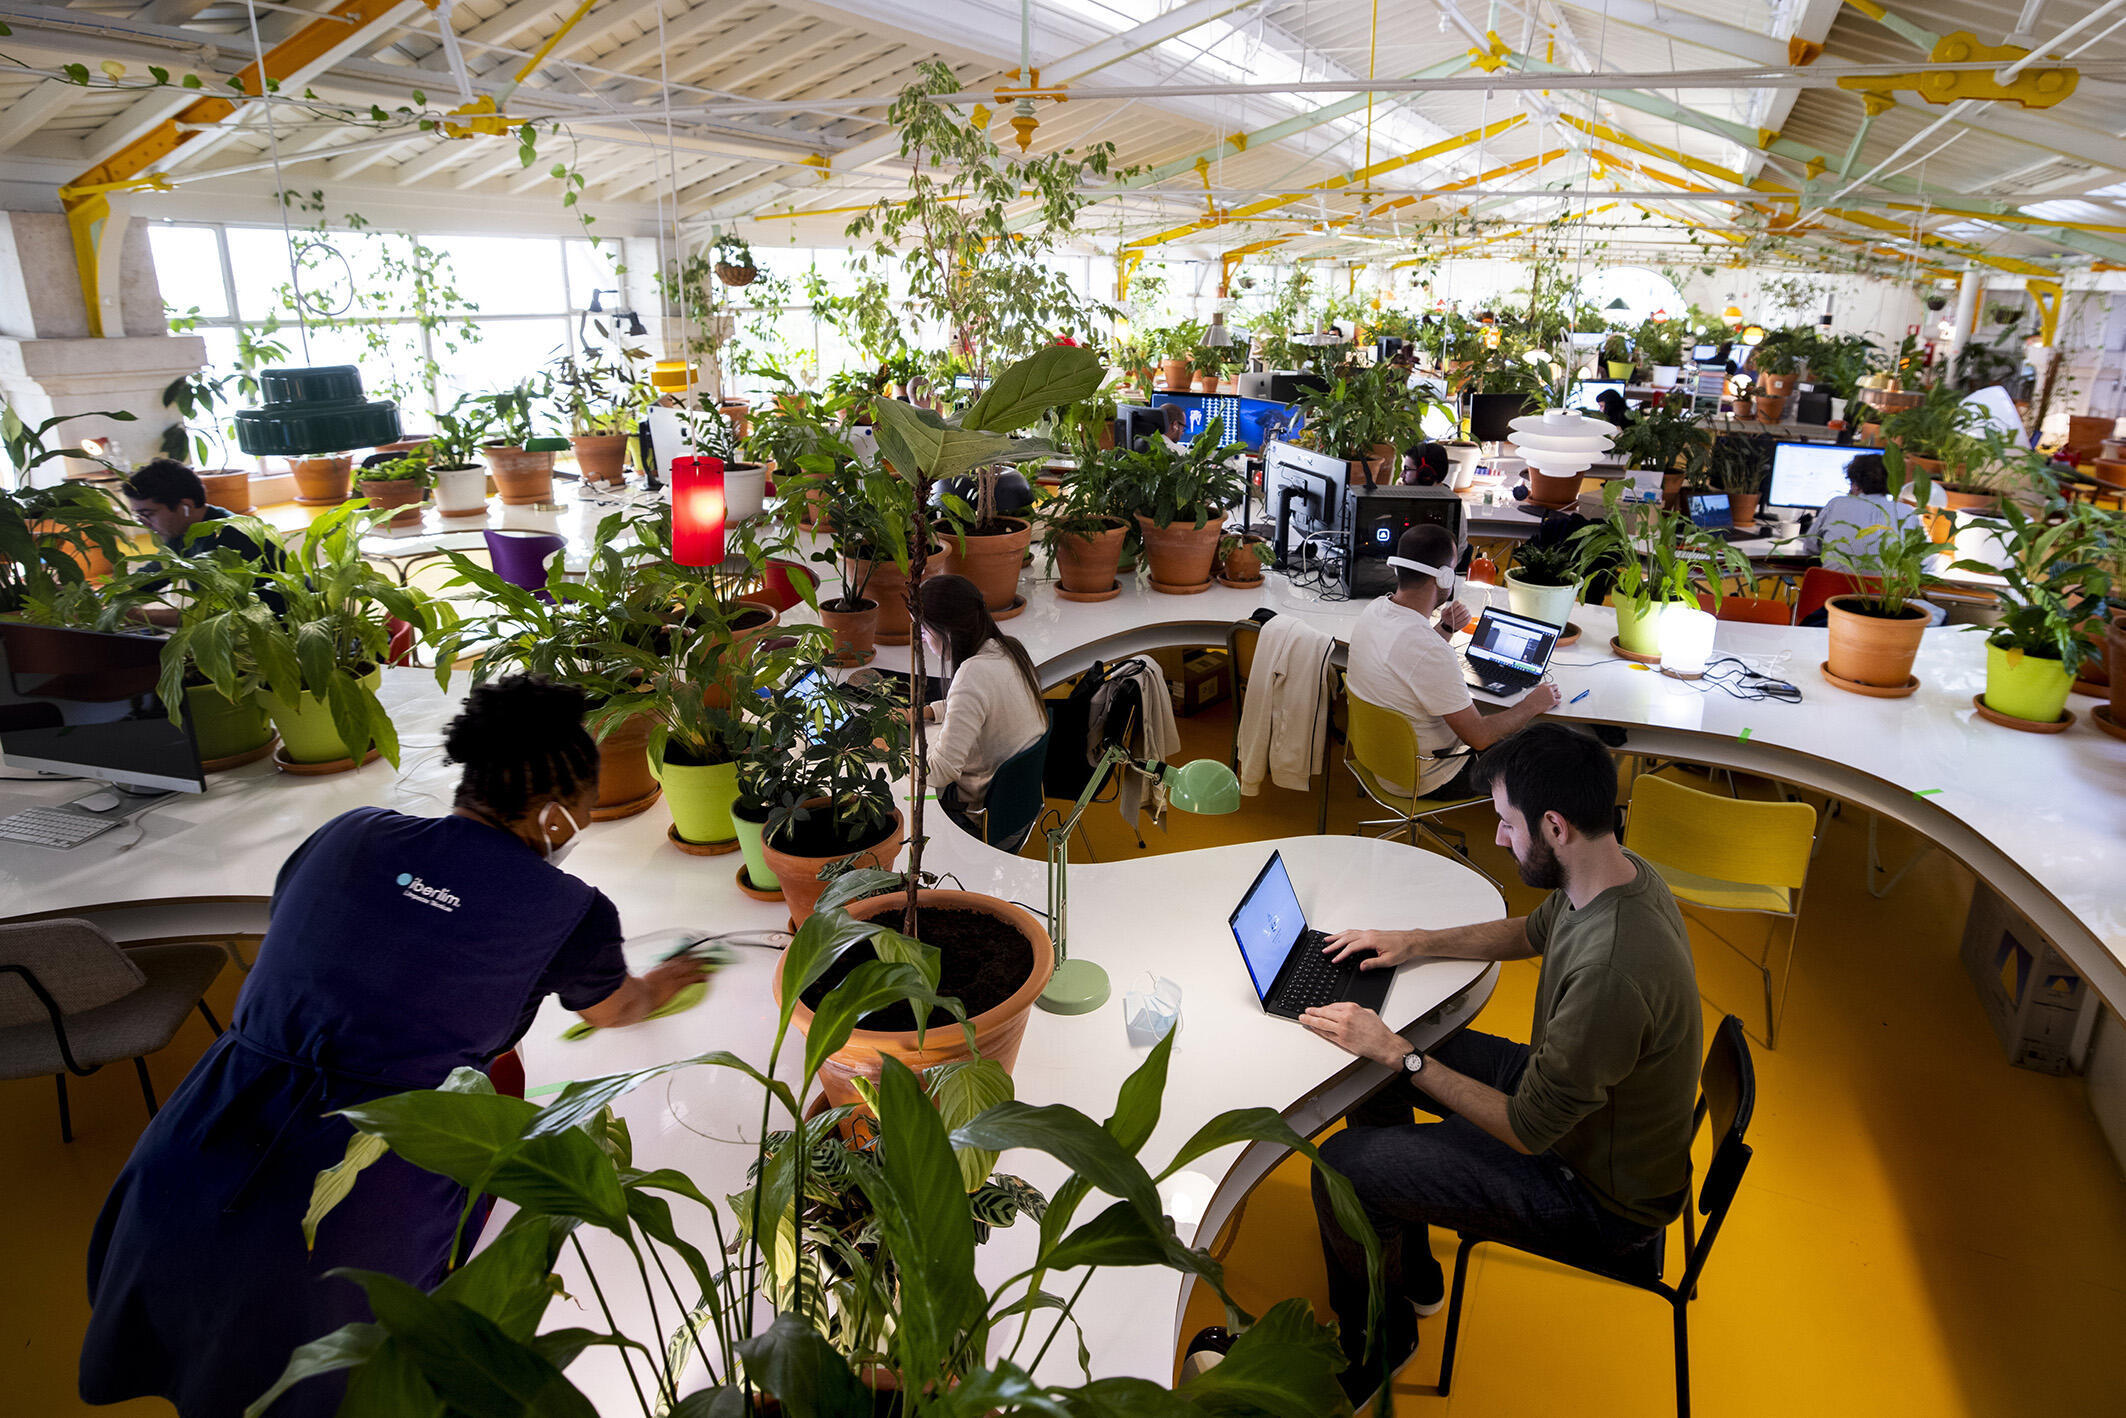 """Vincent (right), a French software developer, is seen here in Lisbon at """"Second house,"""" a sought-after coworking space with a proliferation of indoor plants."""